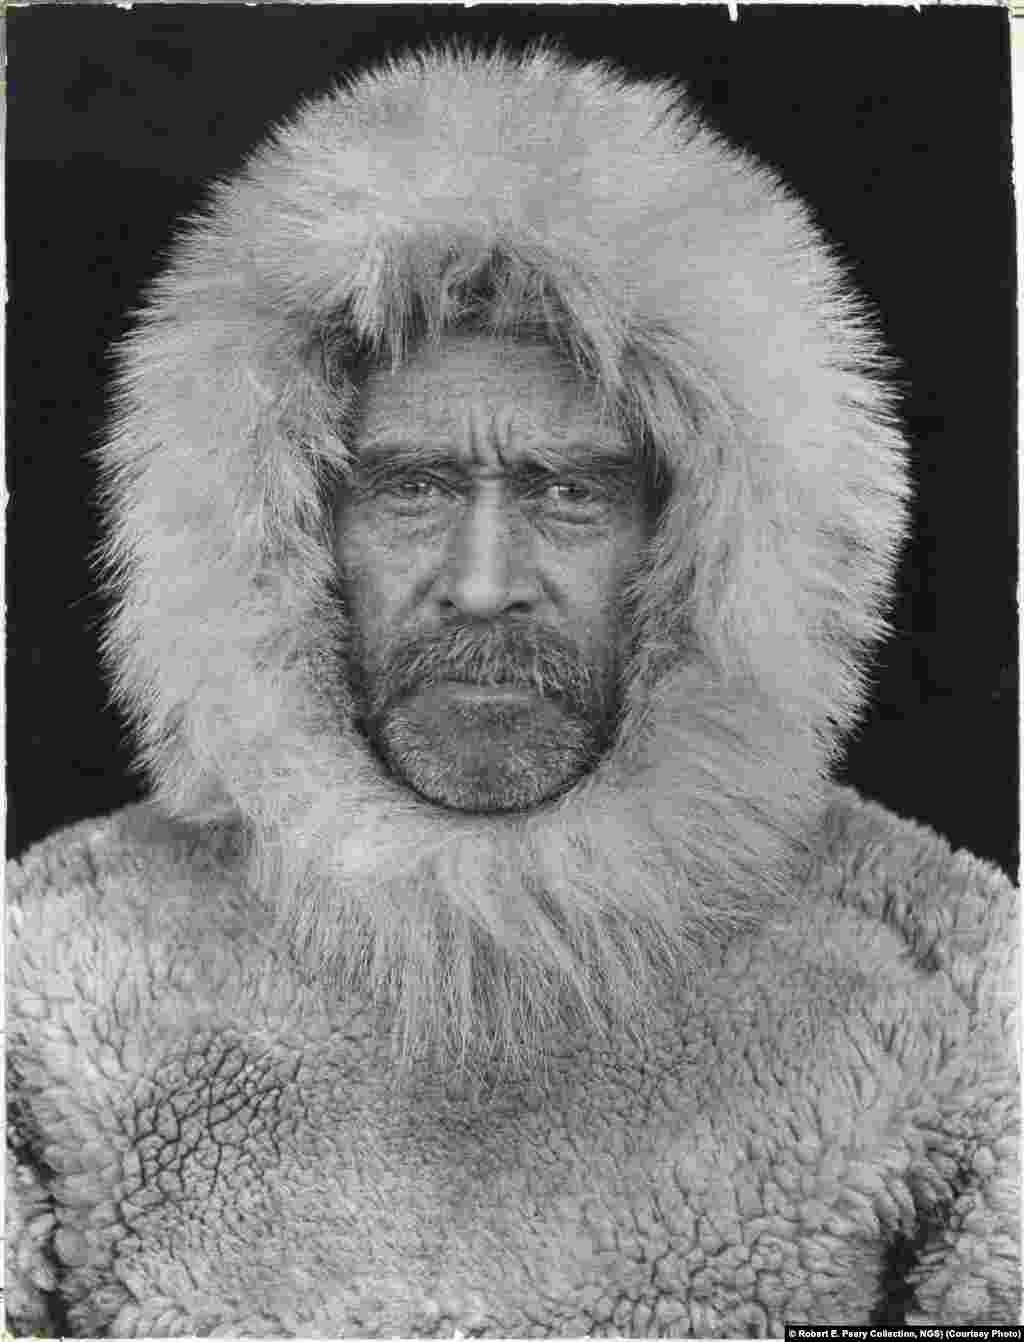 National Geographic-funded Commander Robert E. Peary's 1909 expedition to the North Pole. Whether Peary and his assistant, Matthew Henson, reached the pole or not, they came closer to that goal than anyone before them.